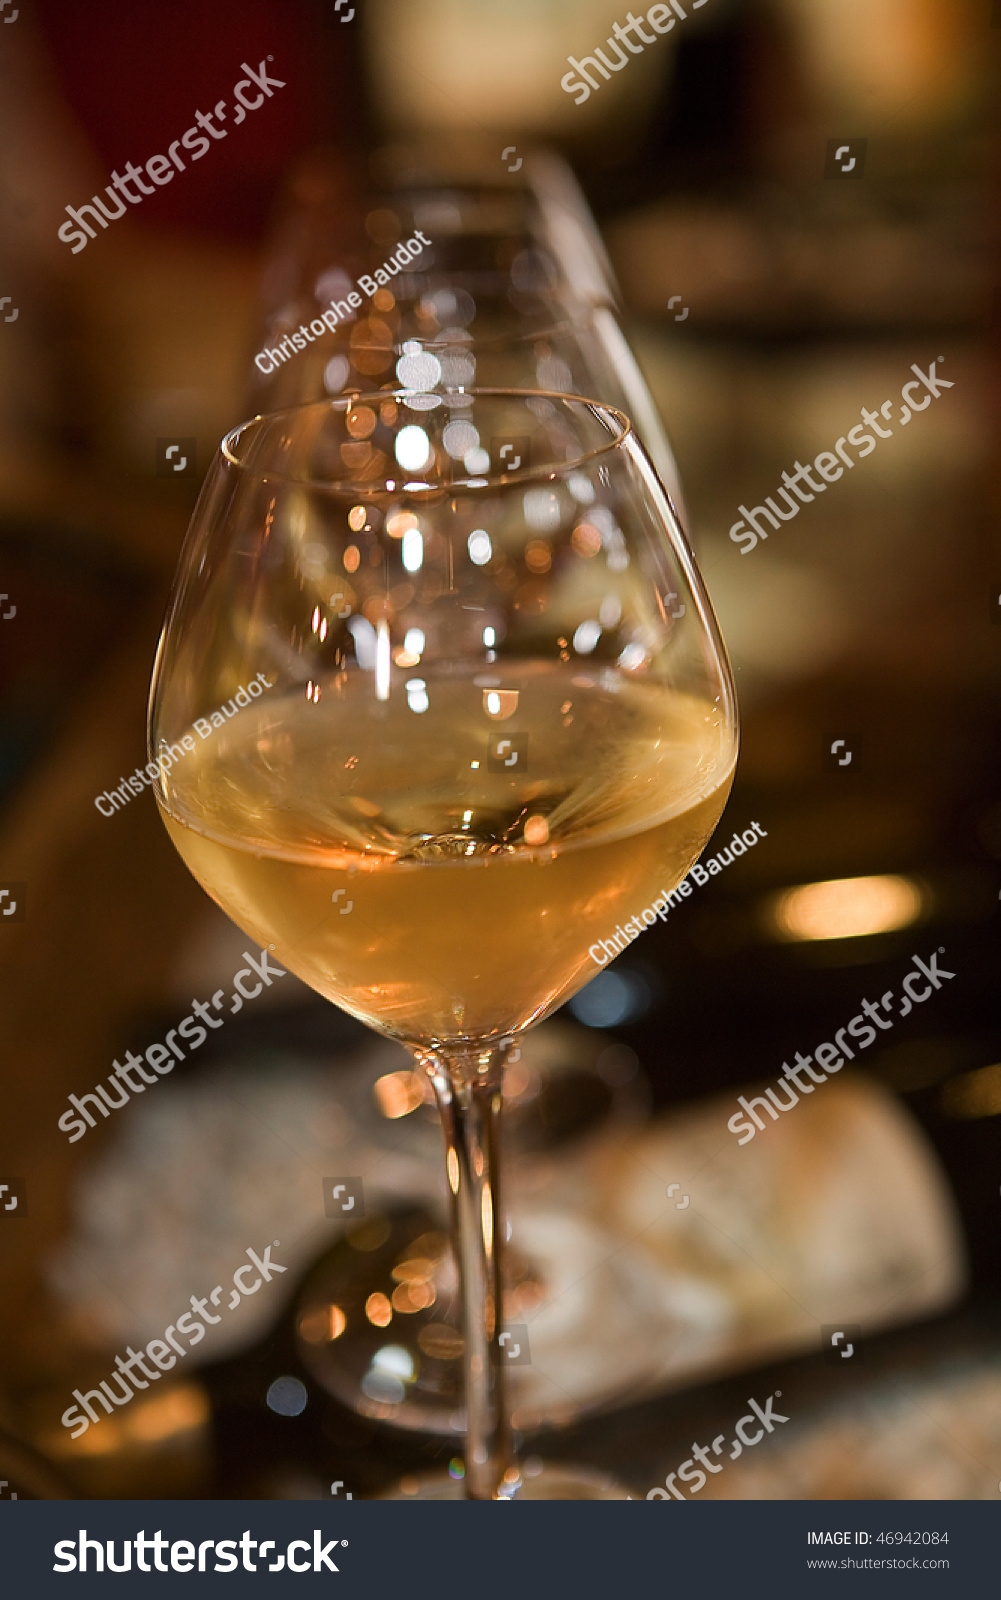 verres de vin en gros plan stock photo 46942084 shutterstock. Black Bedroom Furniture Sets. Home Design Ideas